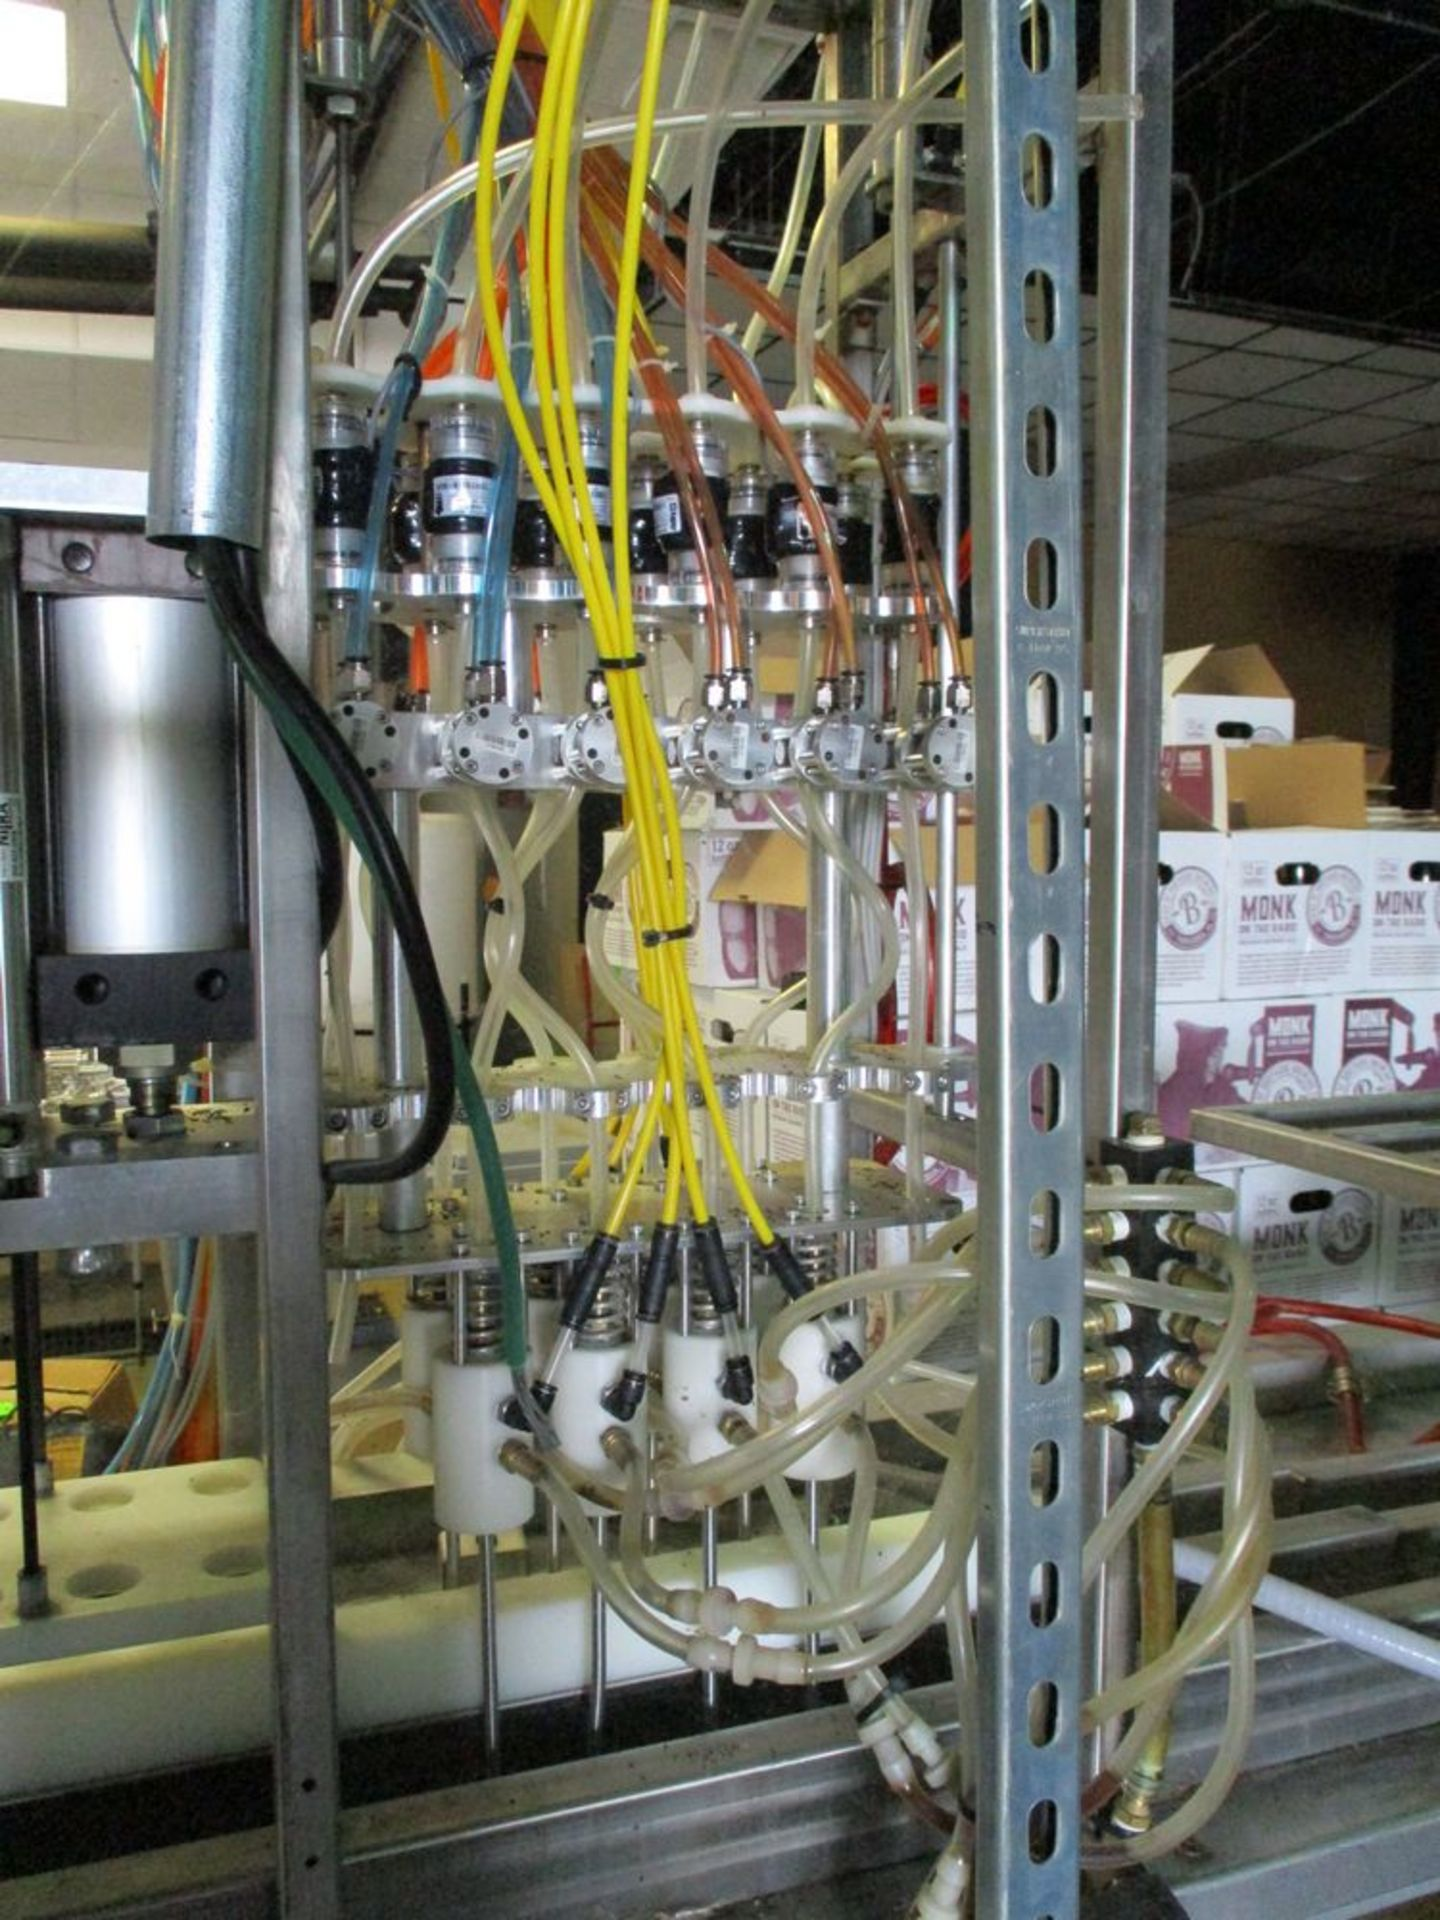 Semi-automatic 6 station bottle filler with spare parts, 112 in x 74 in ***Auctioneer Note*** -- $ - Image 4 of 14